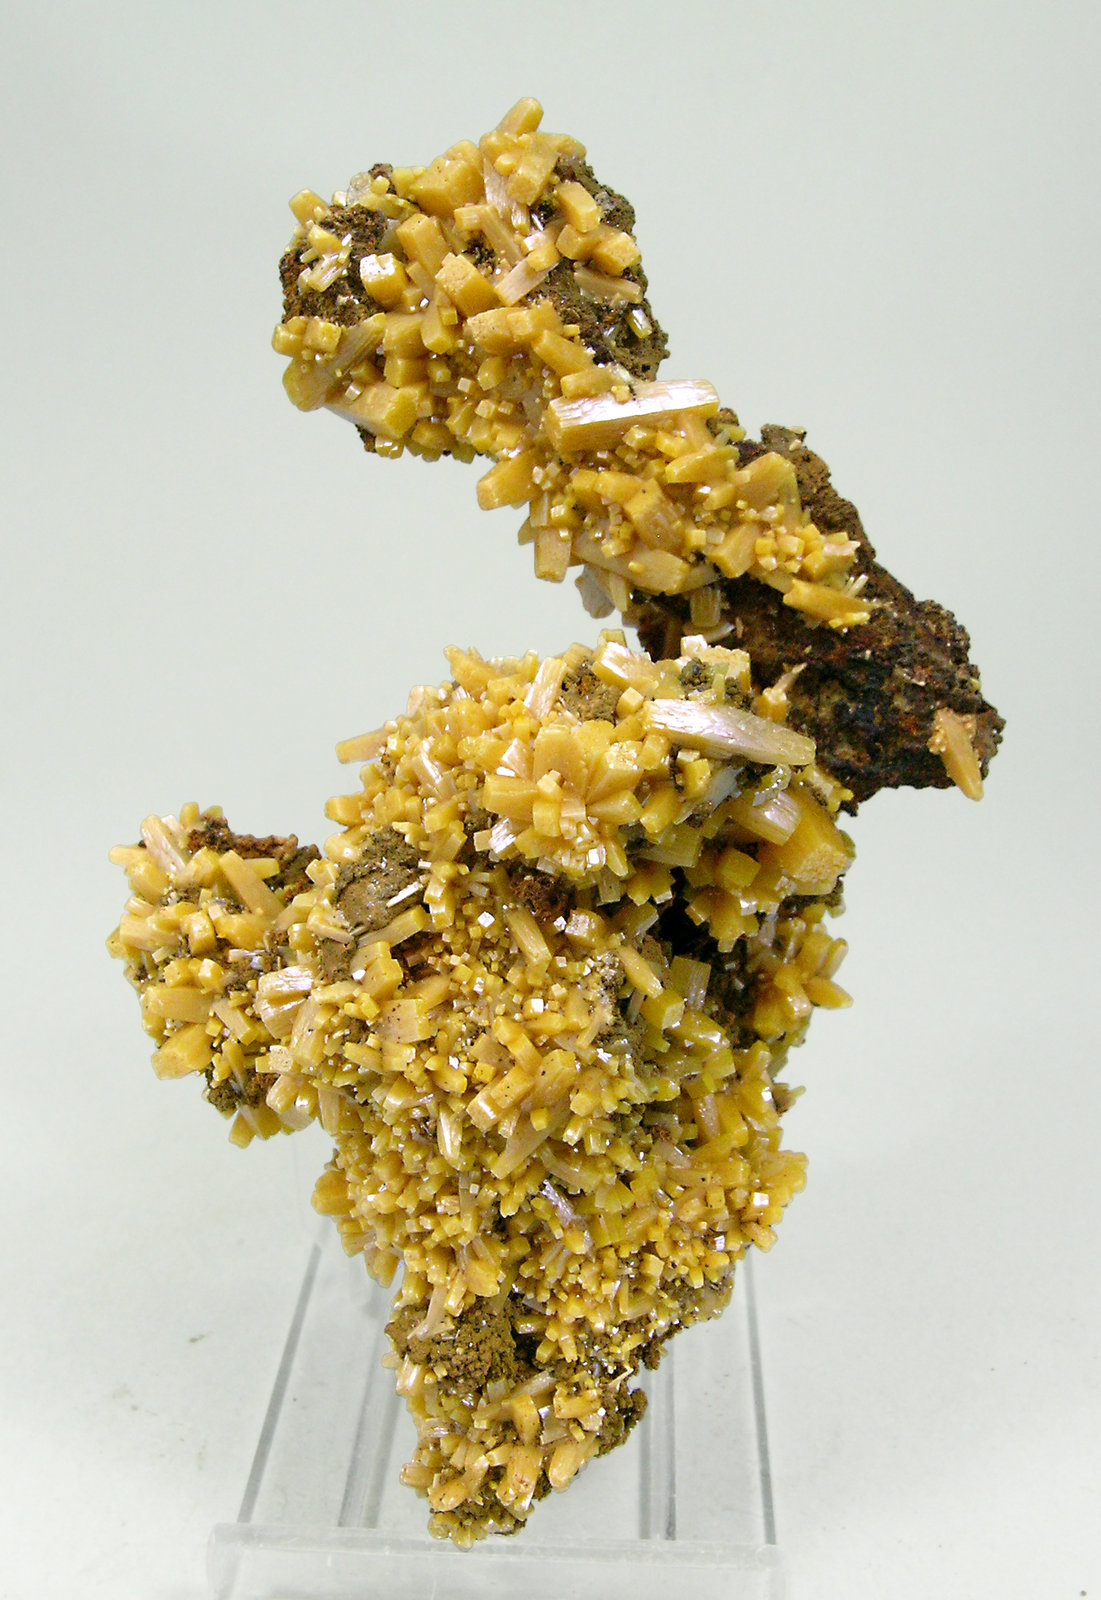 specimens/s_imagesN4/Wulfenite-TC27N4f.jpg